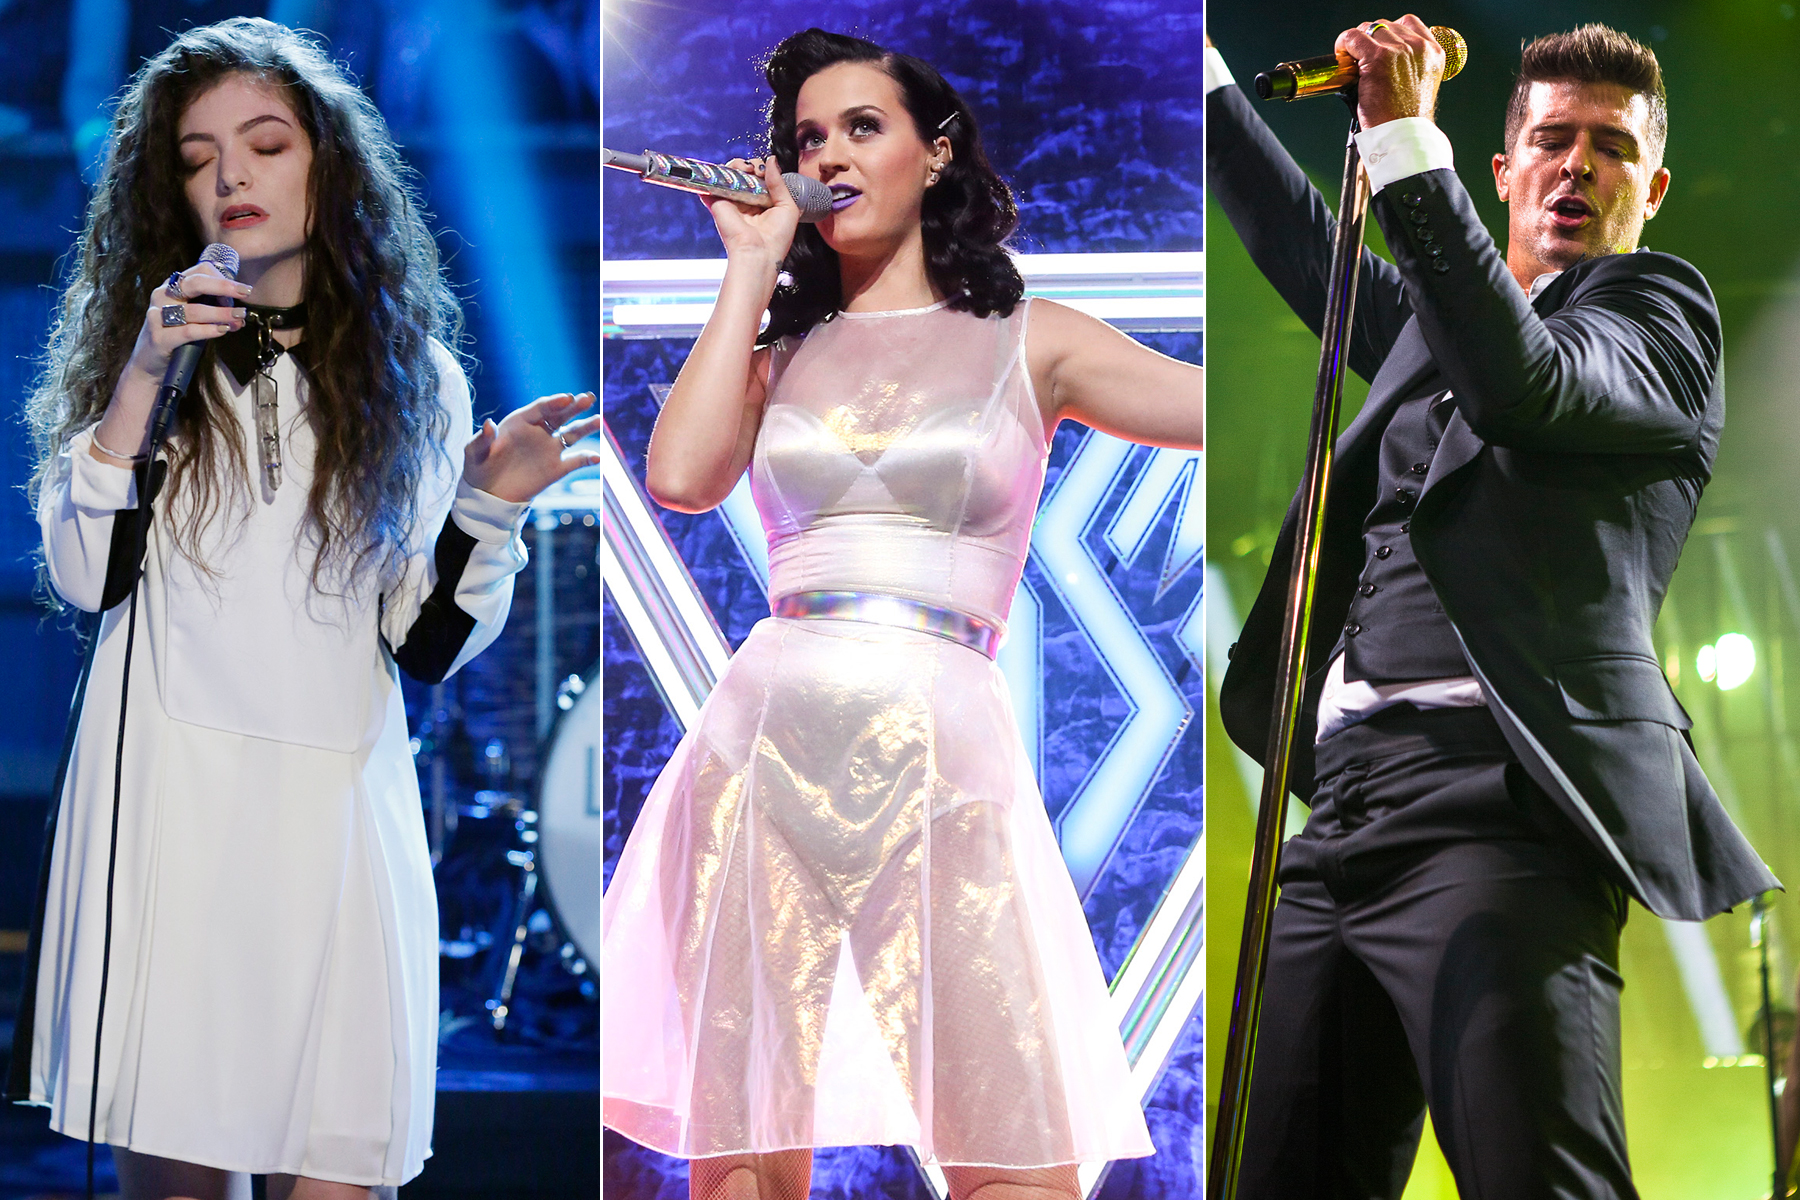 Lorde, Katy Perry, Robin Thicke Added to Grammy Awards Show